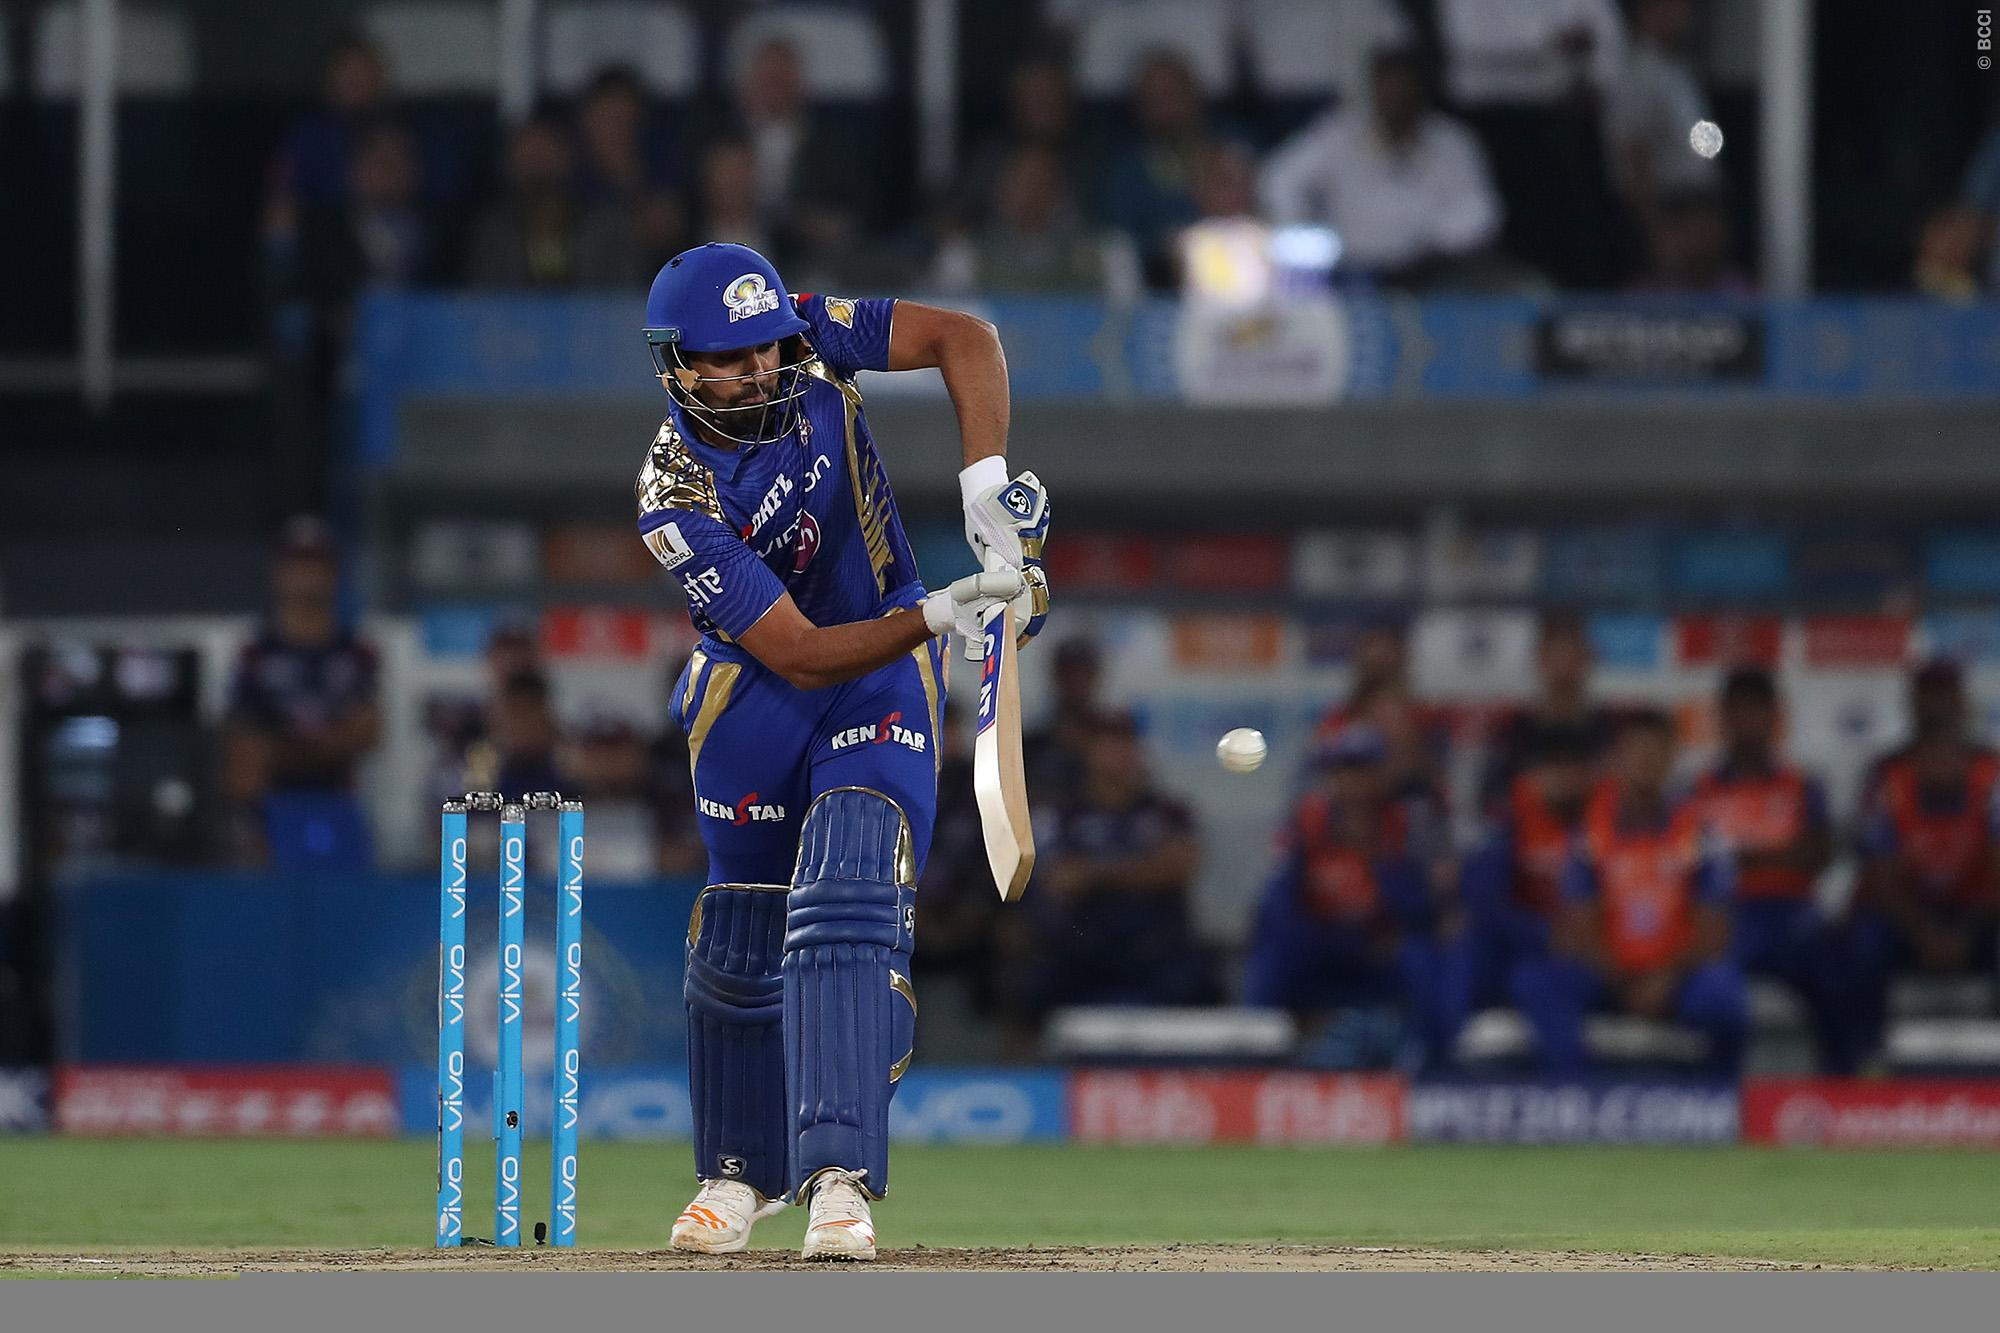 Mumbai retained skipper Rohit Sharma for Rs 15 crore (Image: Ron Gaunt/Sportzpics/IPL)